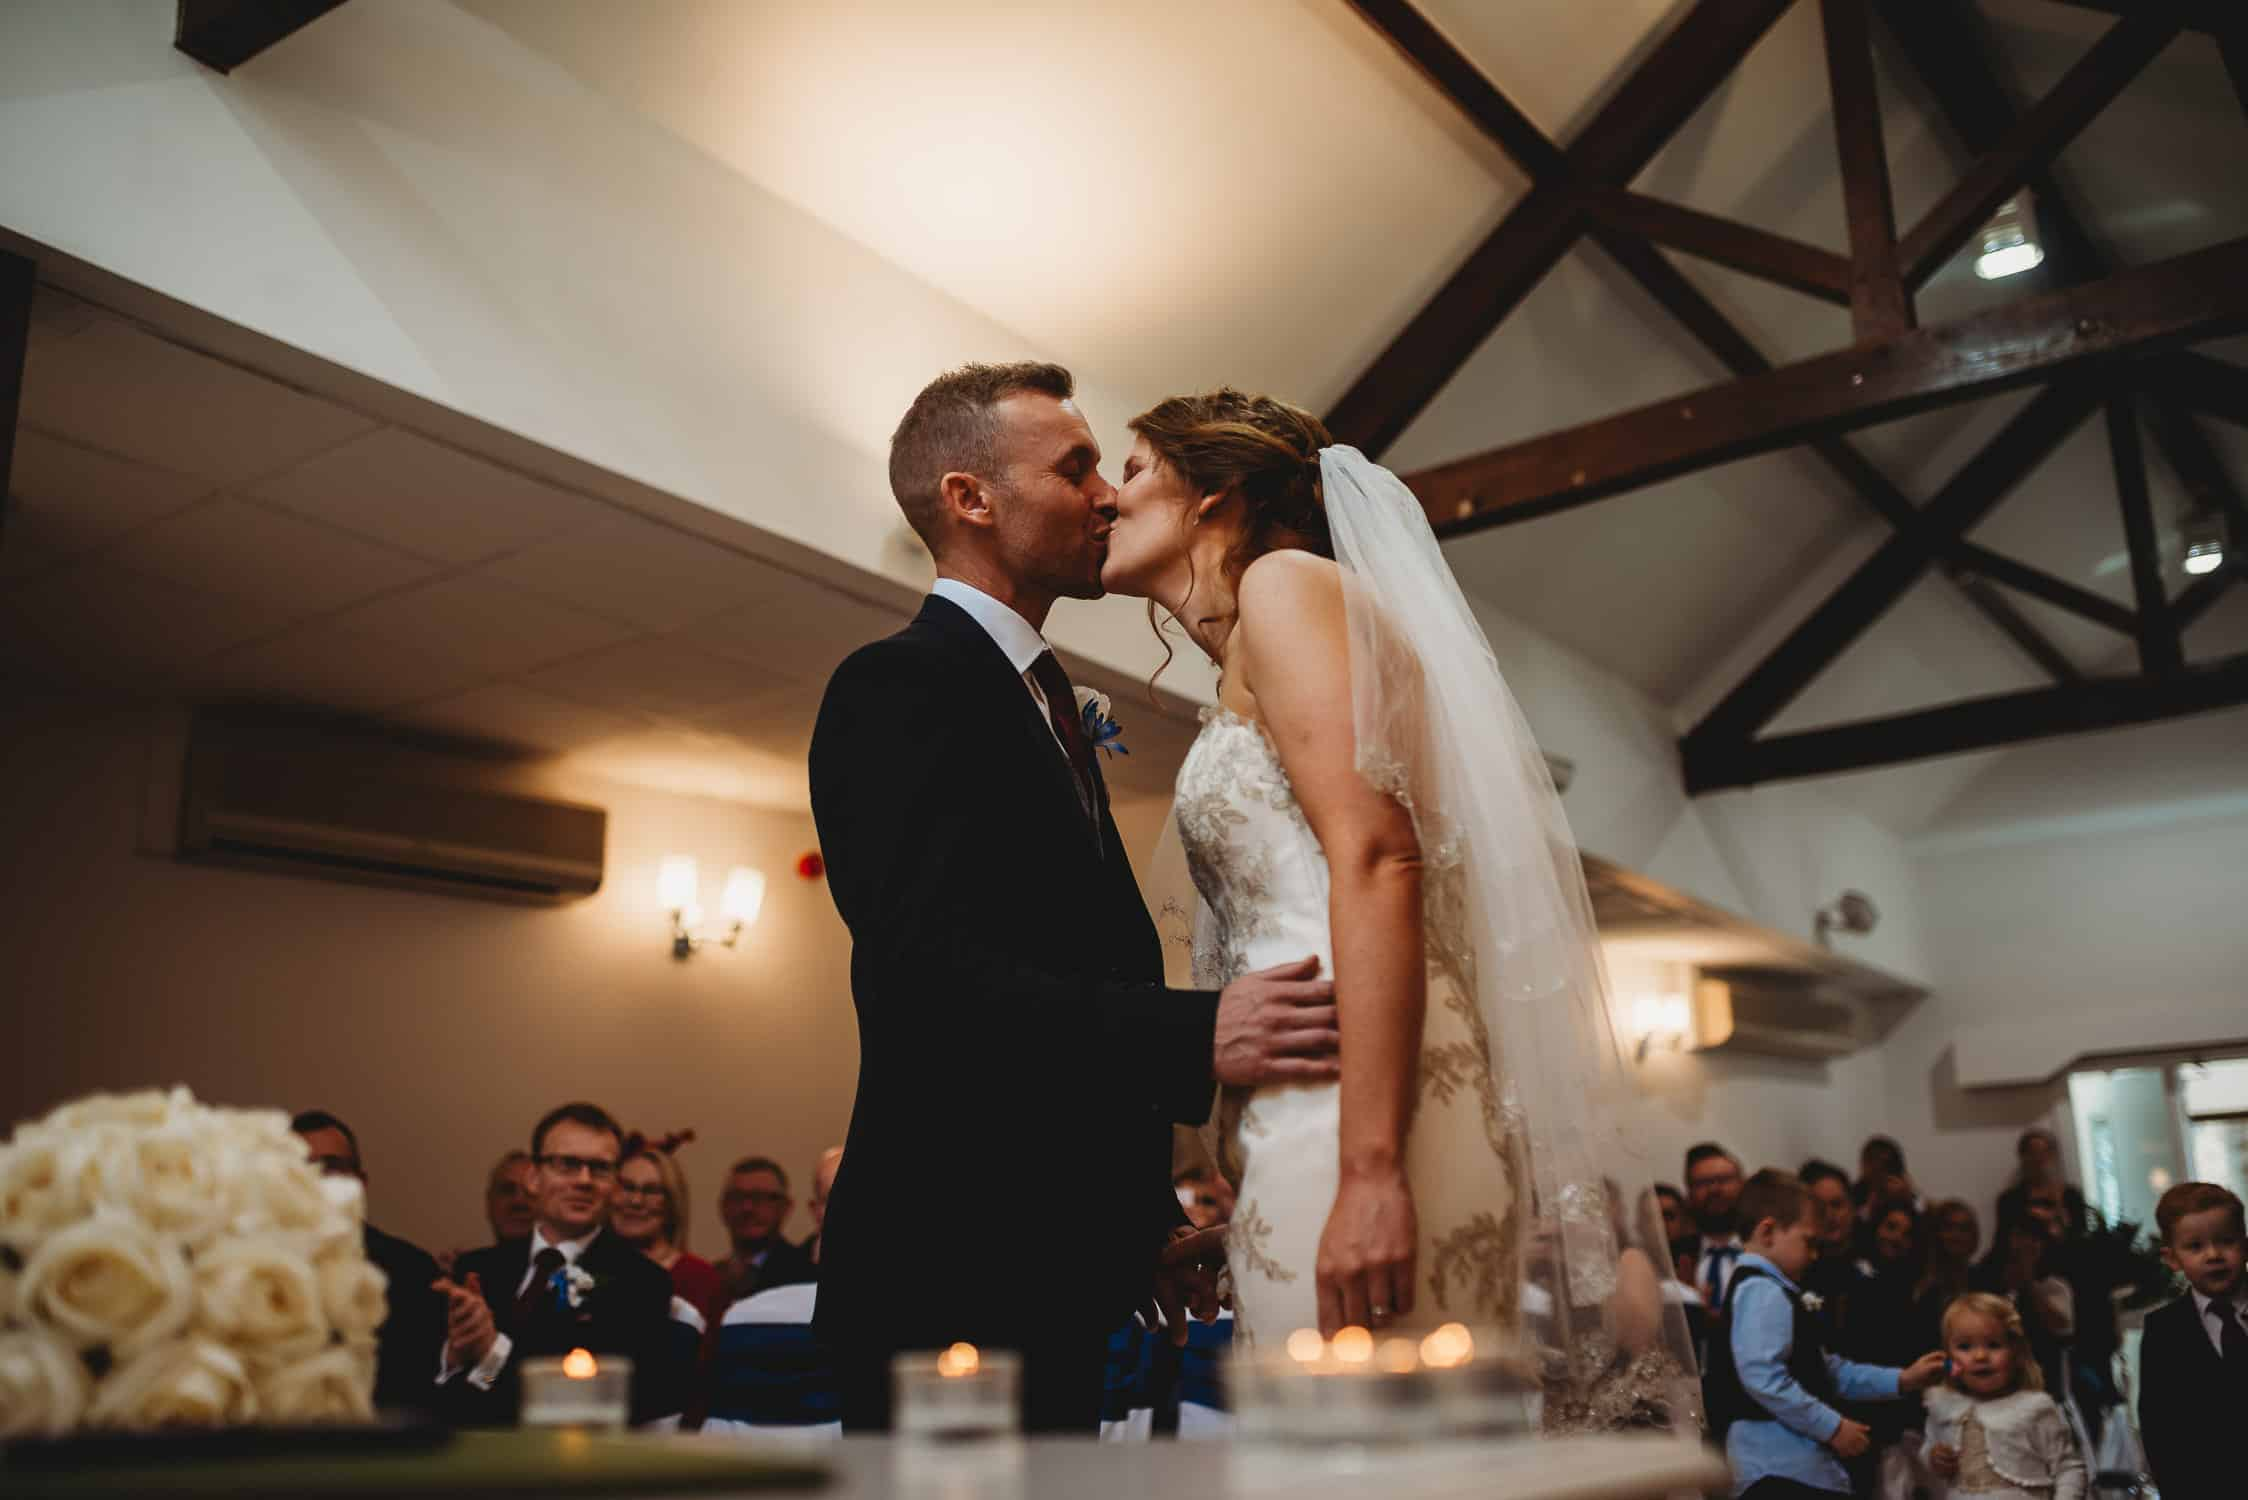 bride and groom kissing after wedding ceremony at Stirk House in Lancashire